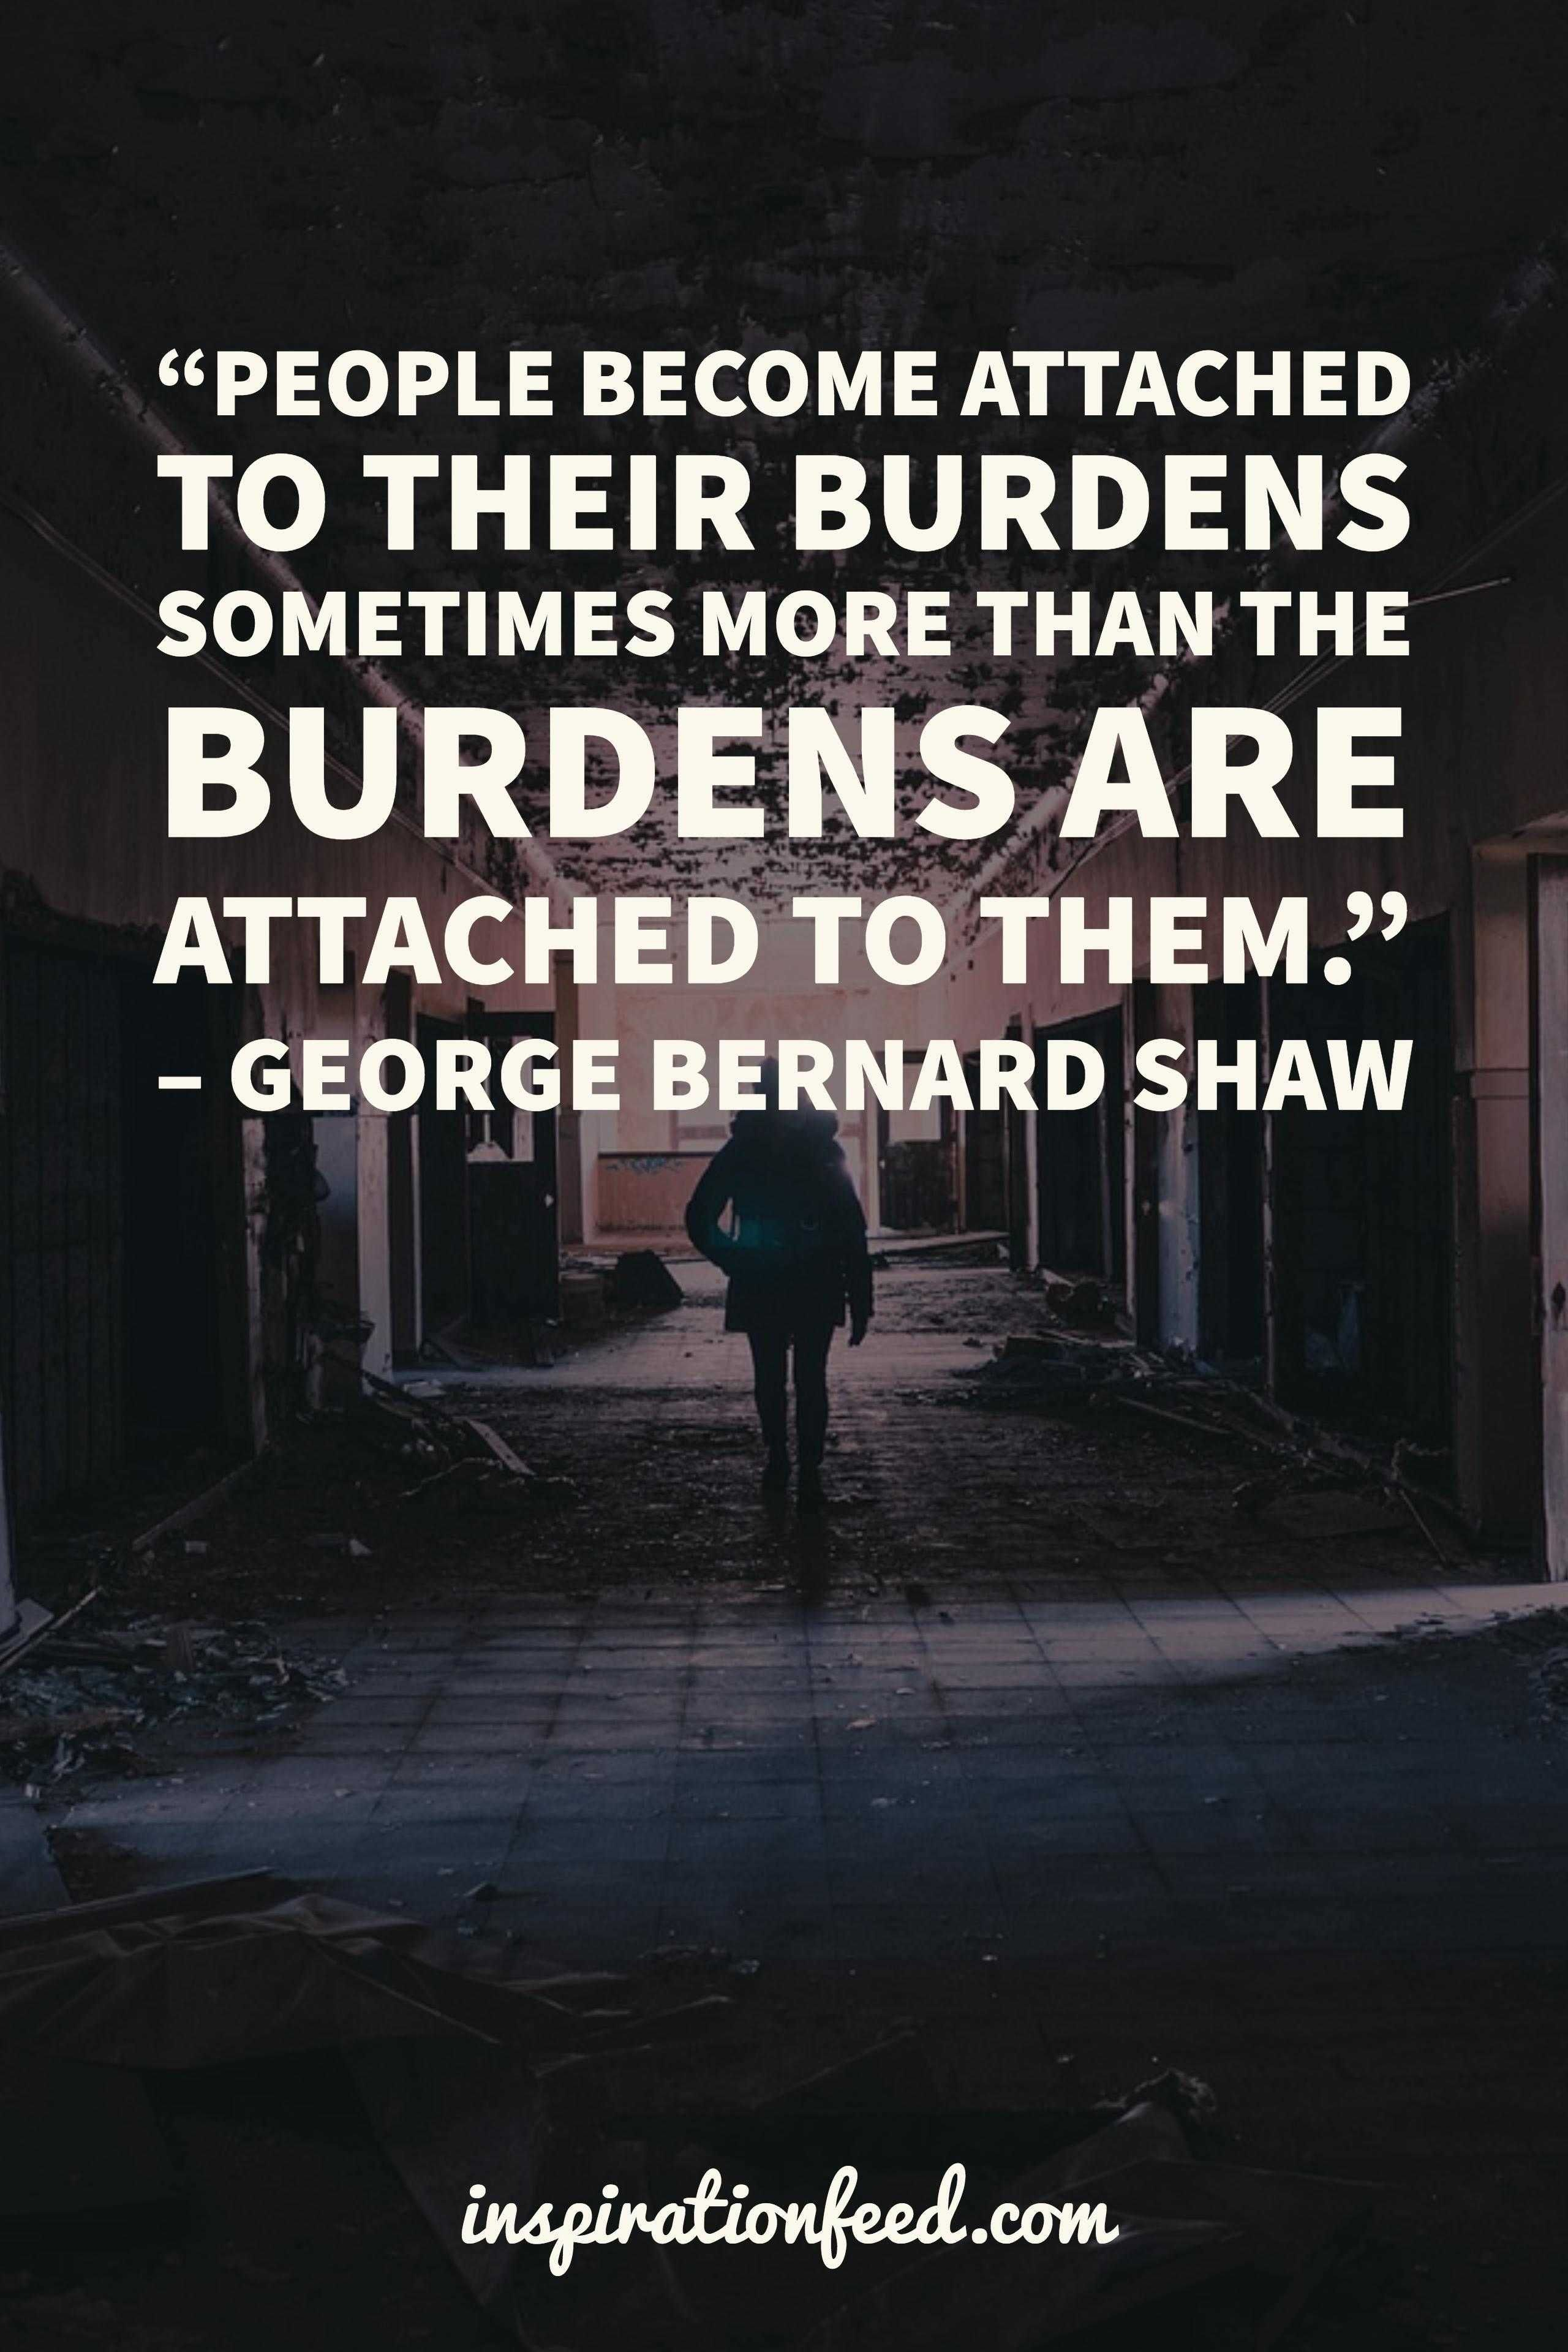 Bernard Shaw We do not have the right to consume happiness without producing it